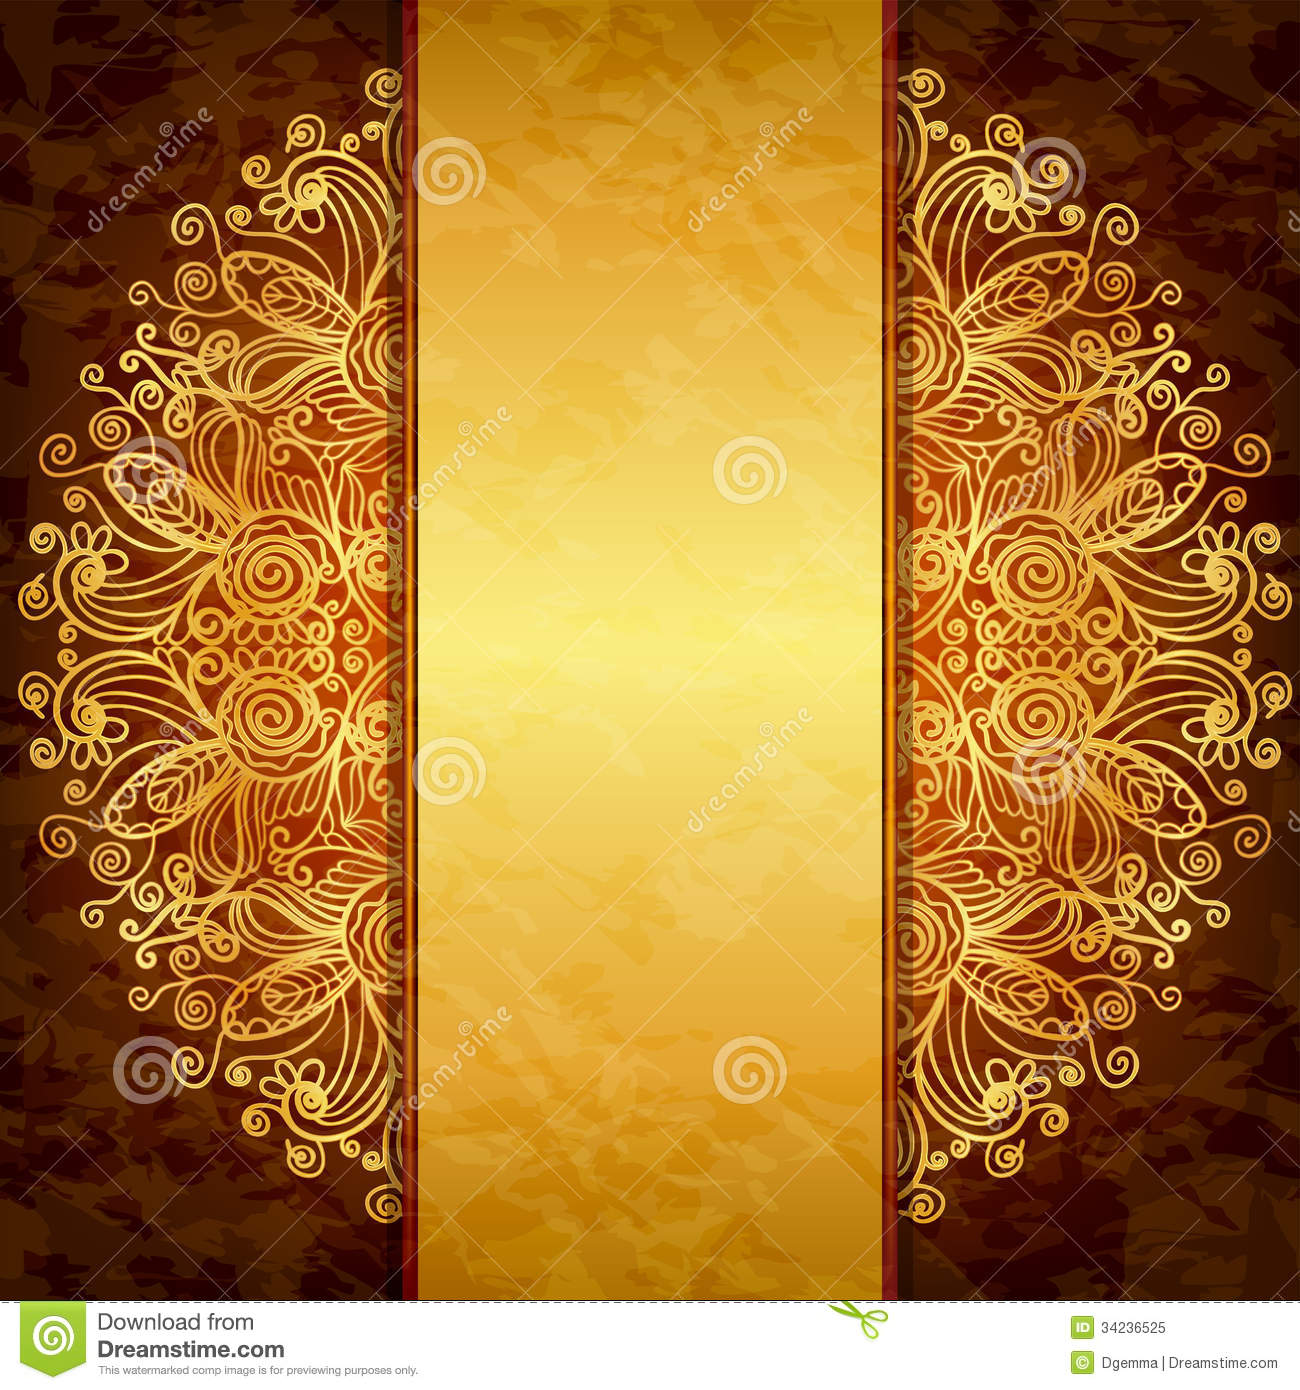 Vintage gold design. stock vector. Illustration of graphic - 34236525